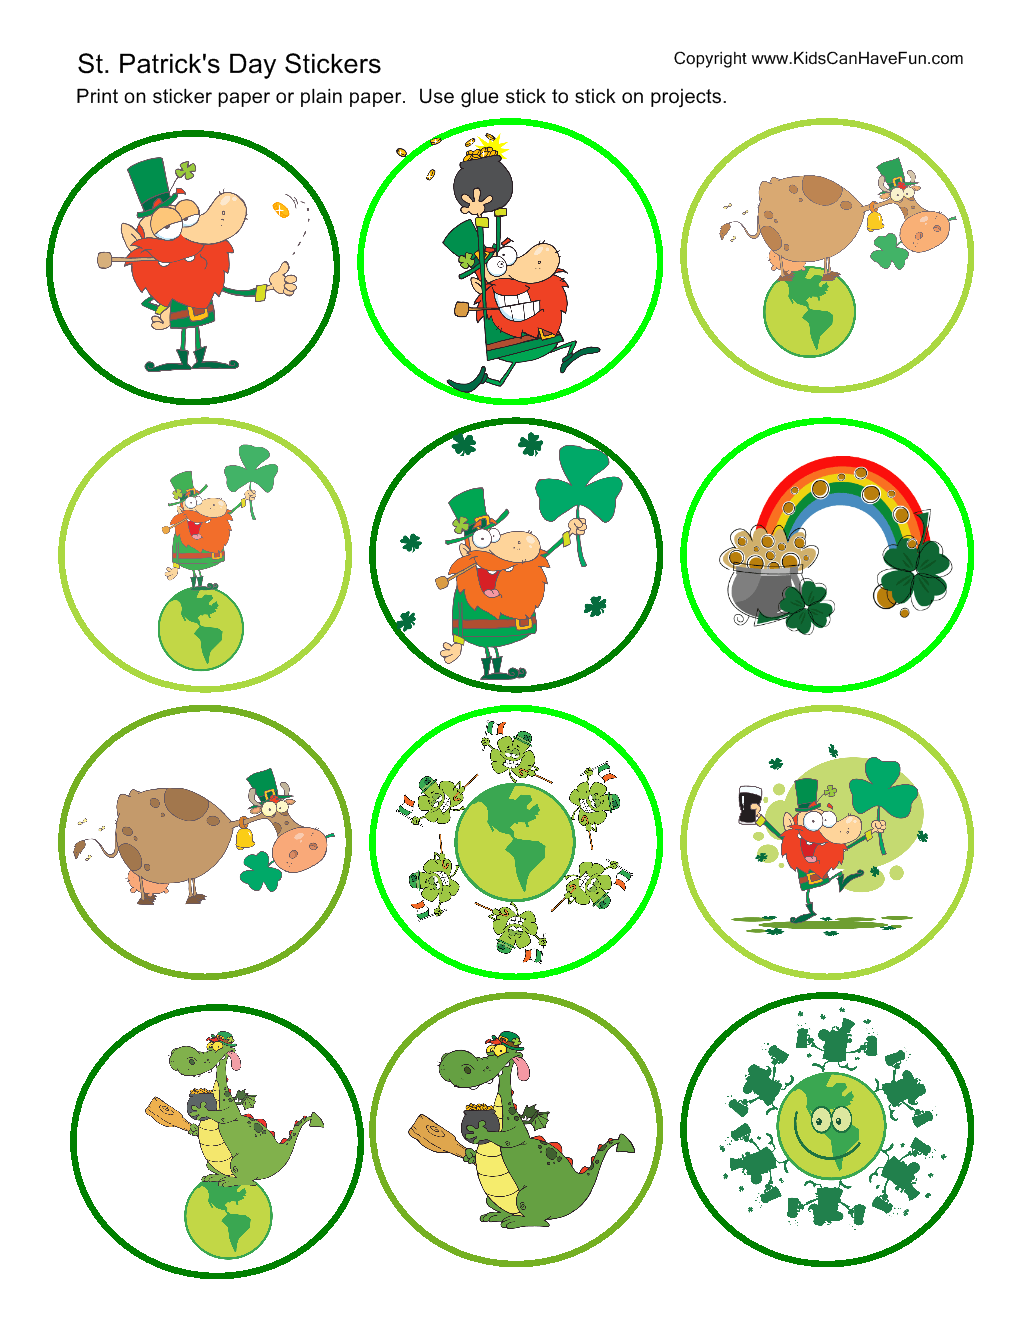 St patricks day preschool crafts - St Patrick S Day Crafts For Kids